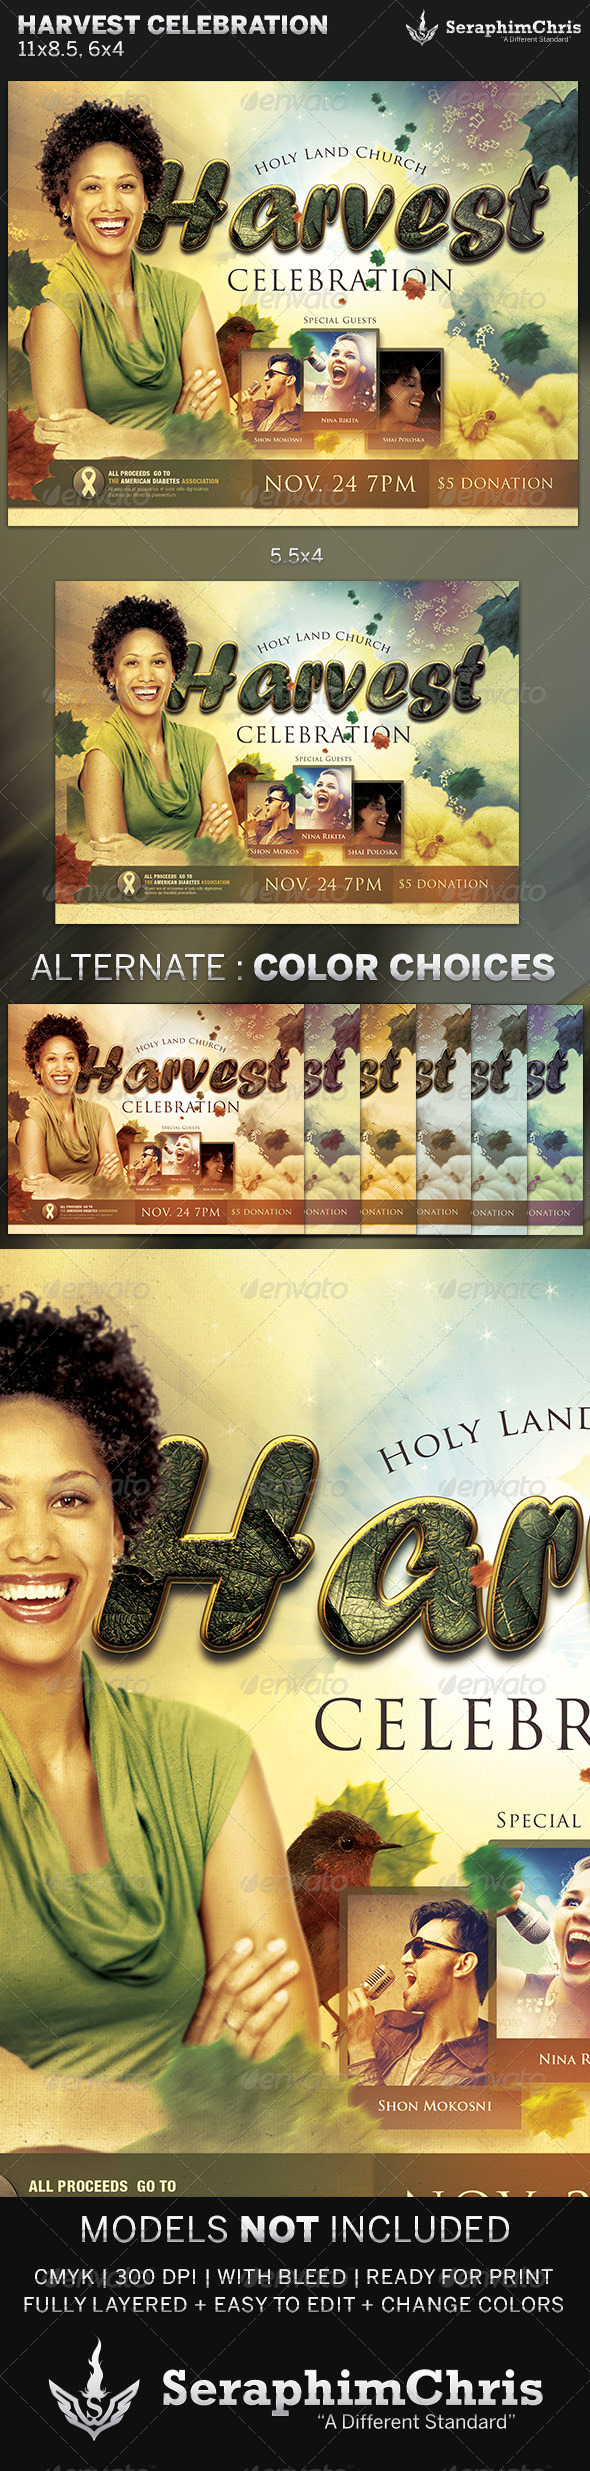 Harvest Celebration: Church Flyer Template - Church Flyers